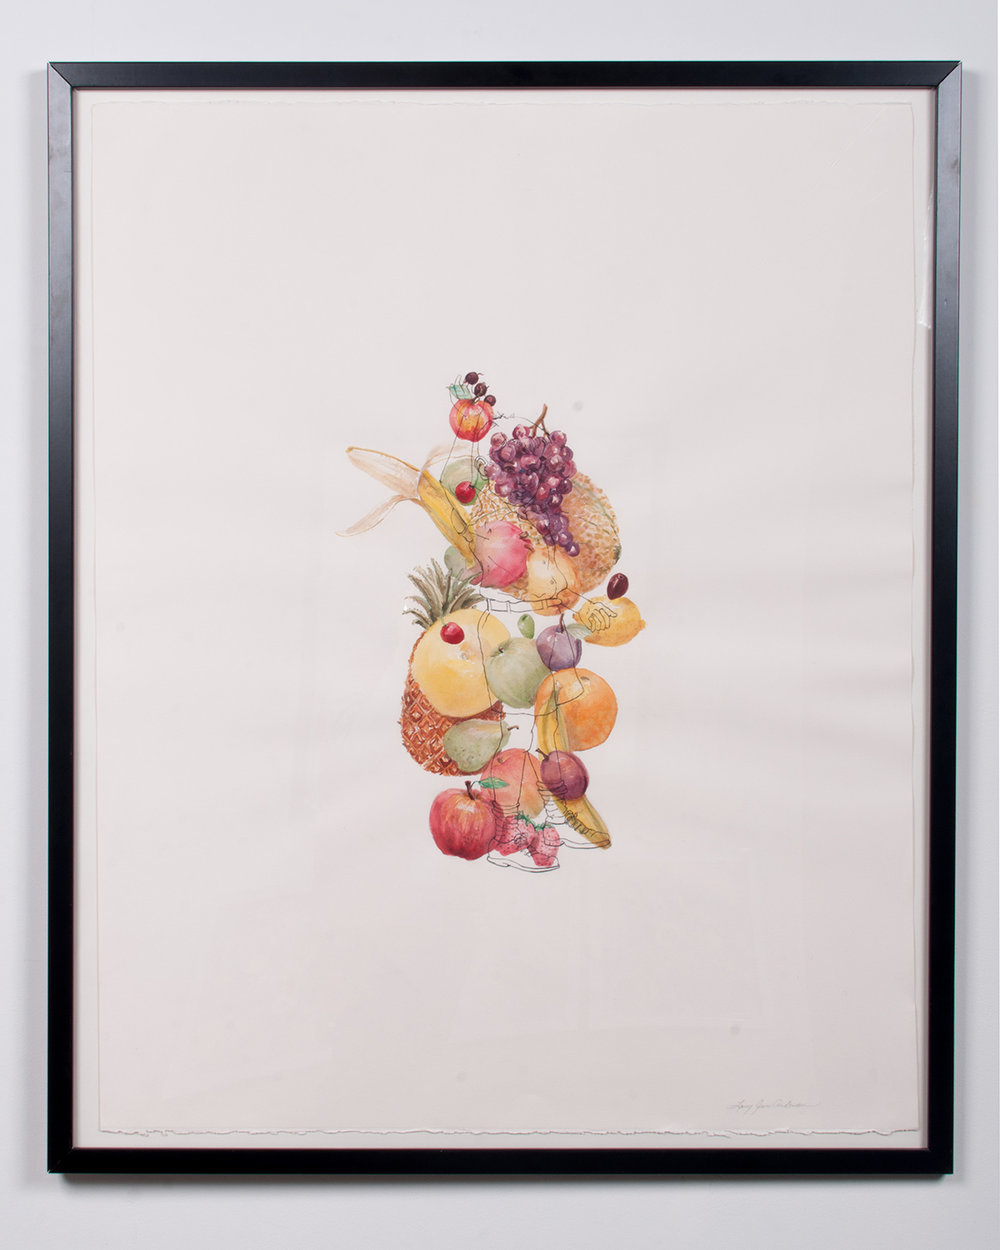 Fruit watercolor and colored pencil 45.75 x 37.5 LJA 160G